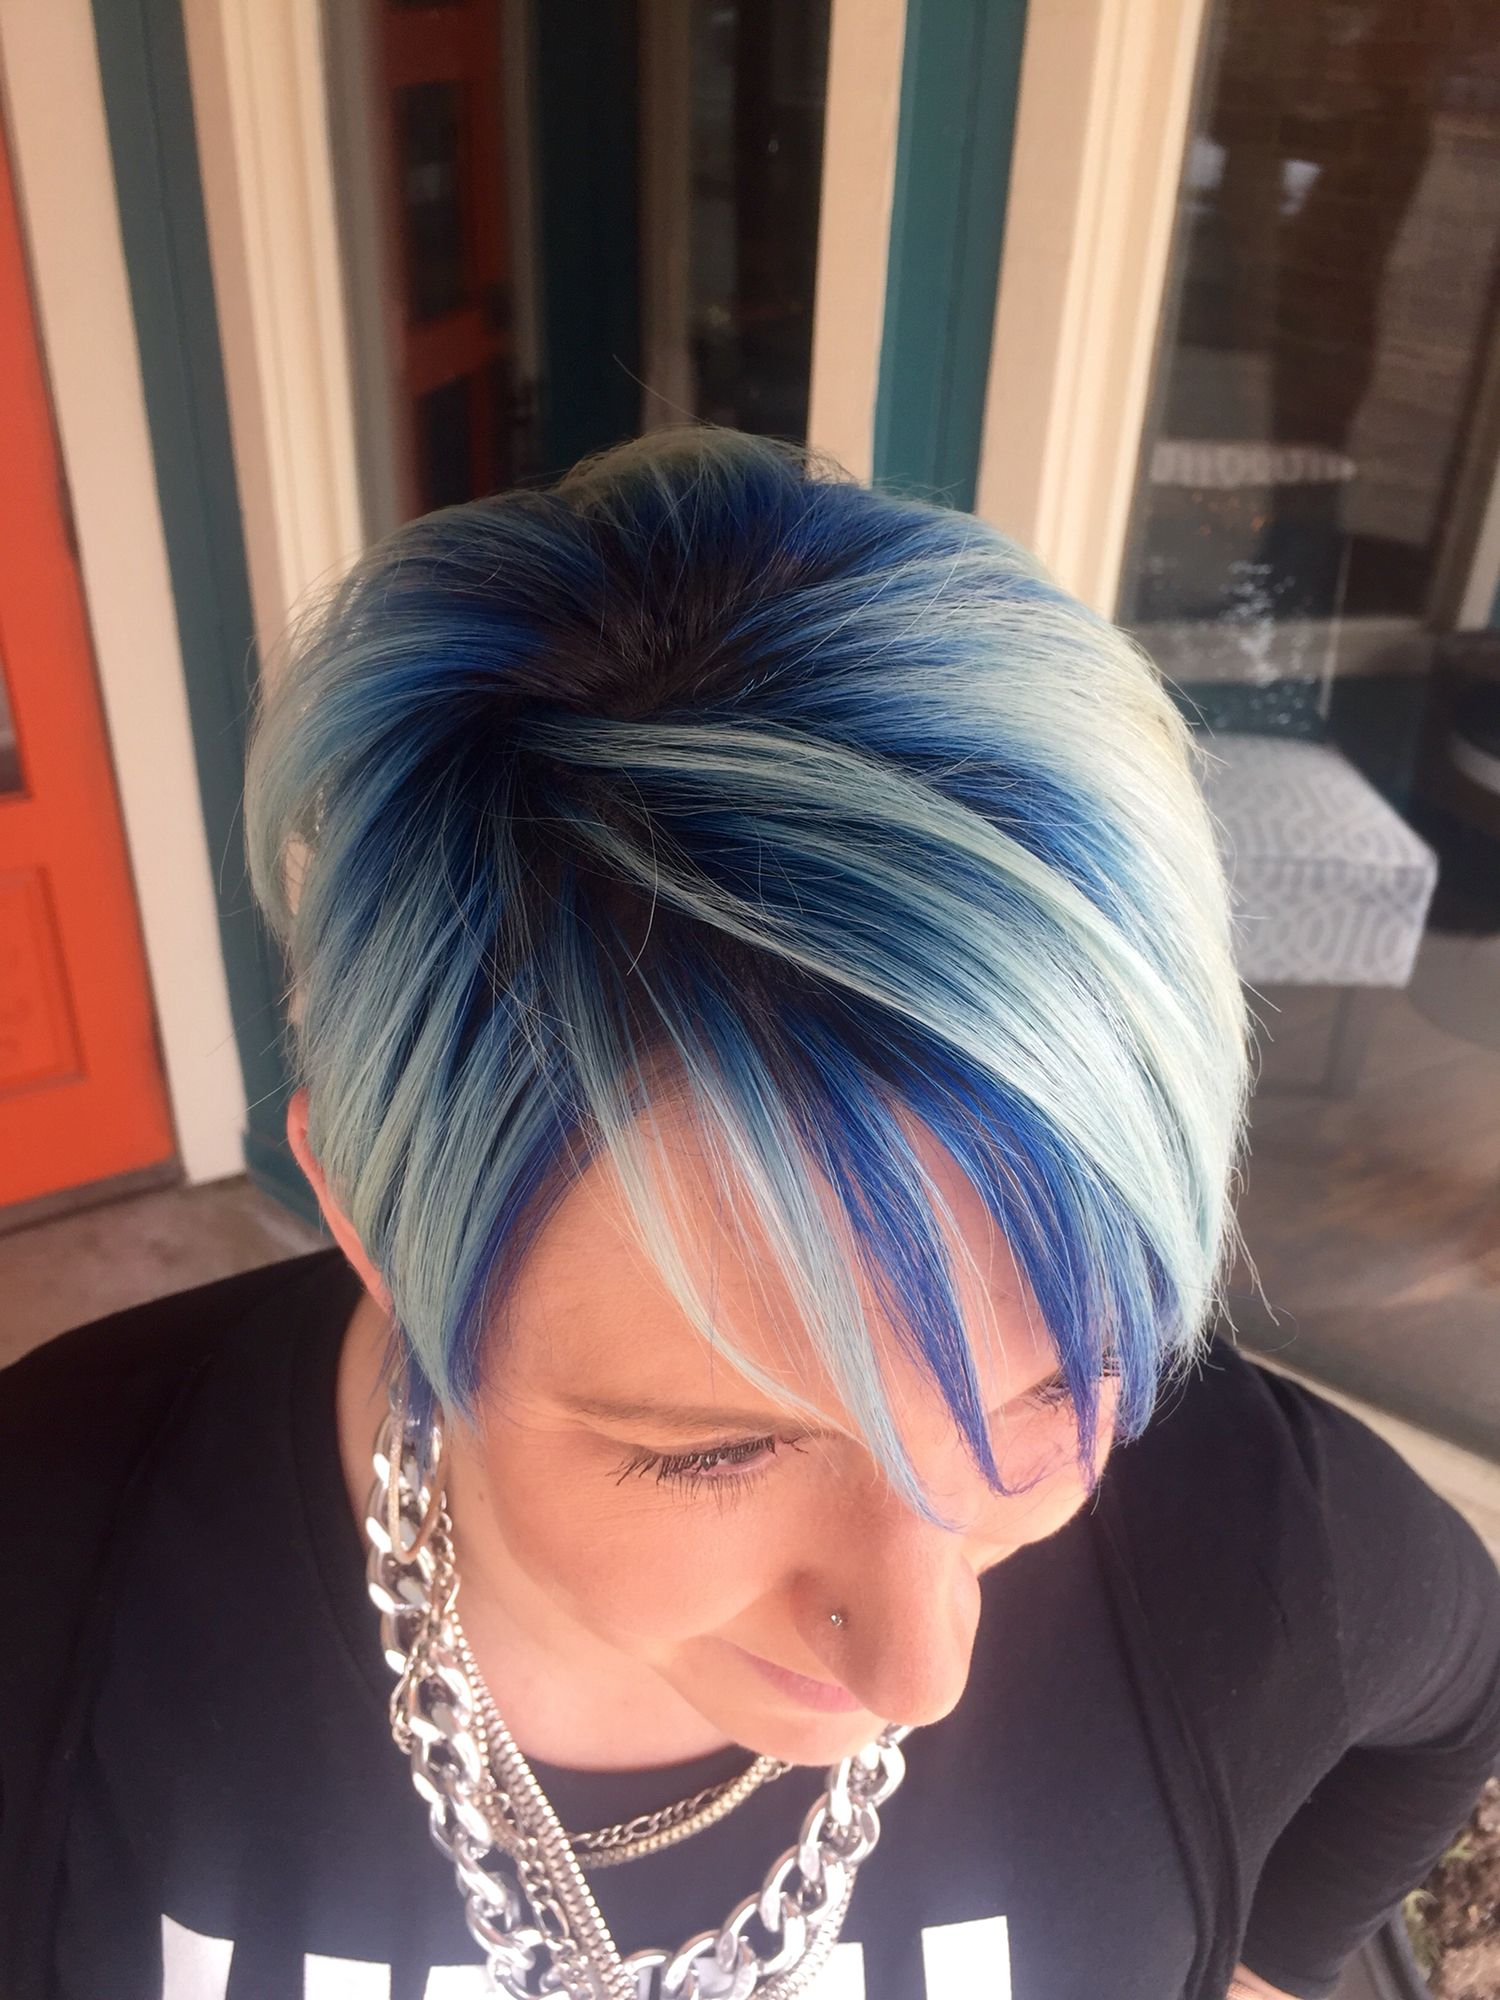 Hair Color Summer 2015 Hair Short Hair Blue Hair White Hair